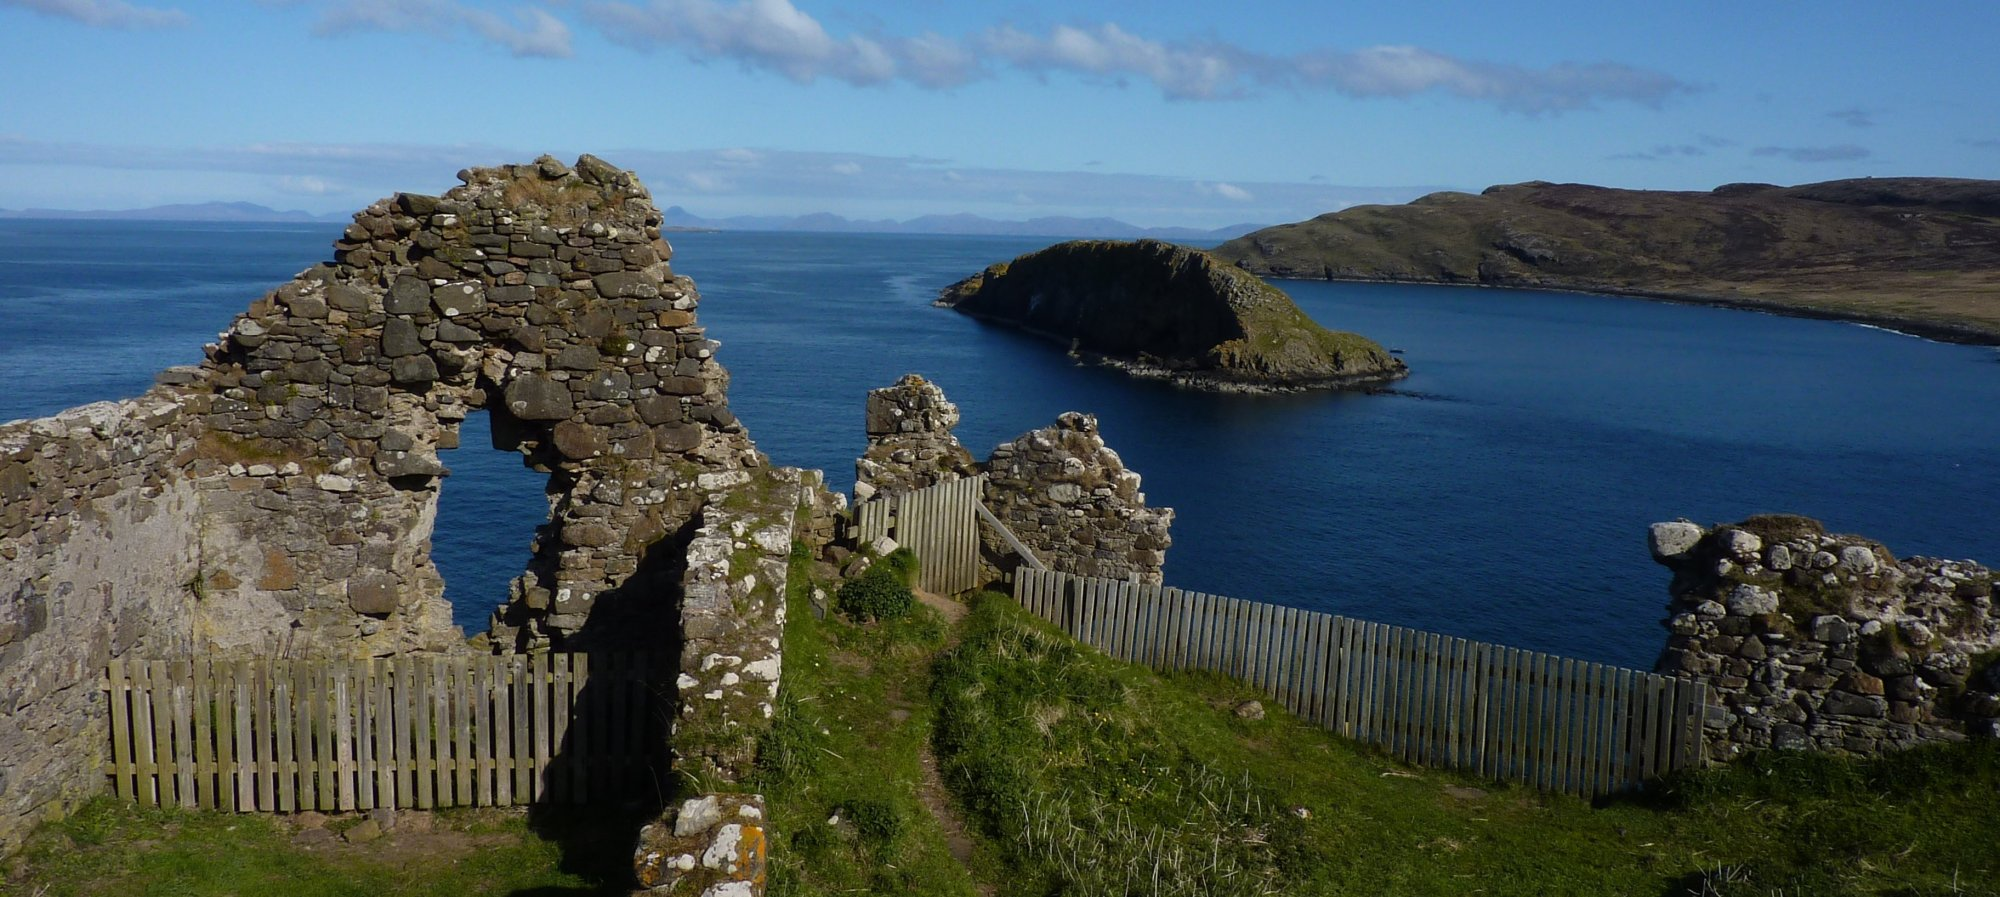 Looking across the broken remains of Duntulm Castle towards Harris and Lewis